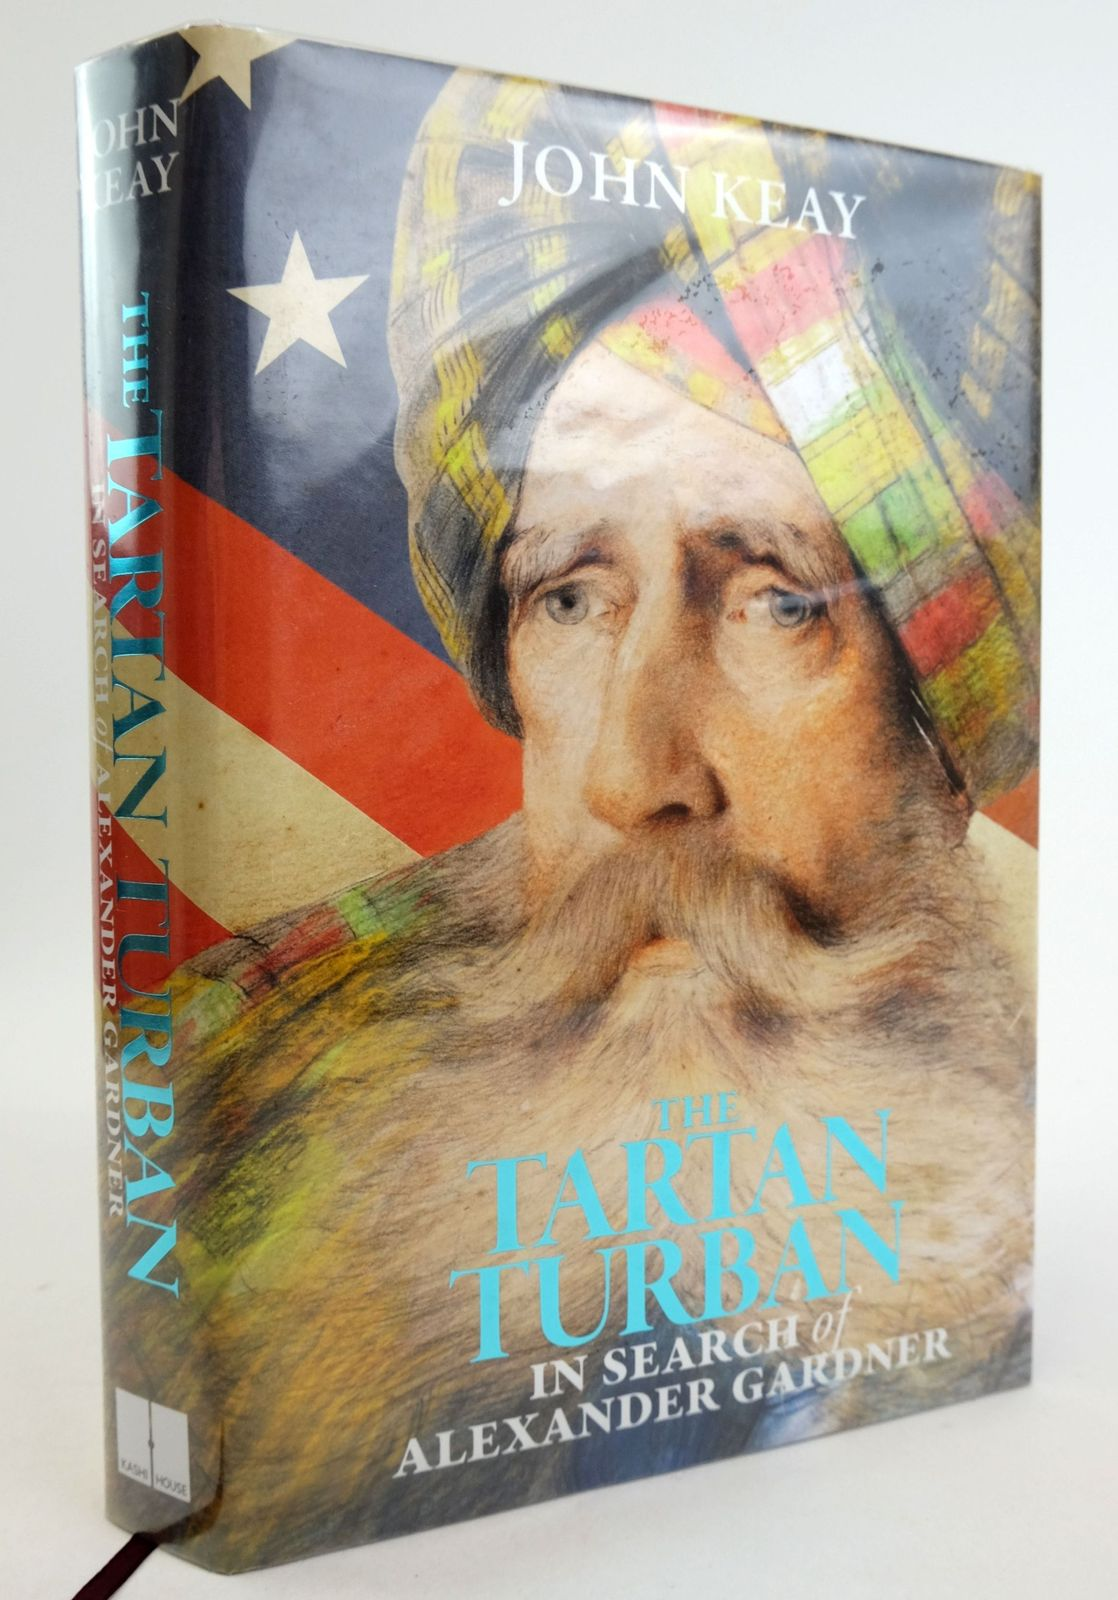 Photo of THE TARTAN TURBAN: IN SEARCH OF ALEXANDER GARDNER written by Keay, John published by Kashi House (STOCK CODE: 1819791)  for sale by Stella & Rose's Books